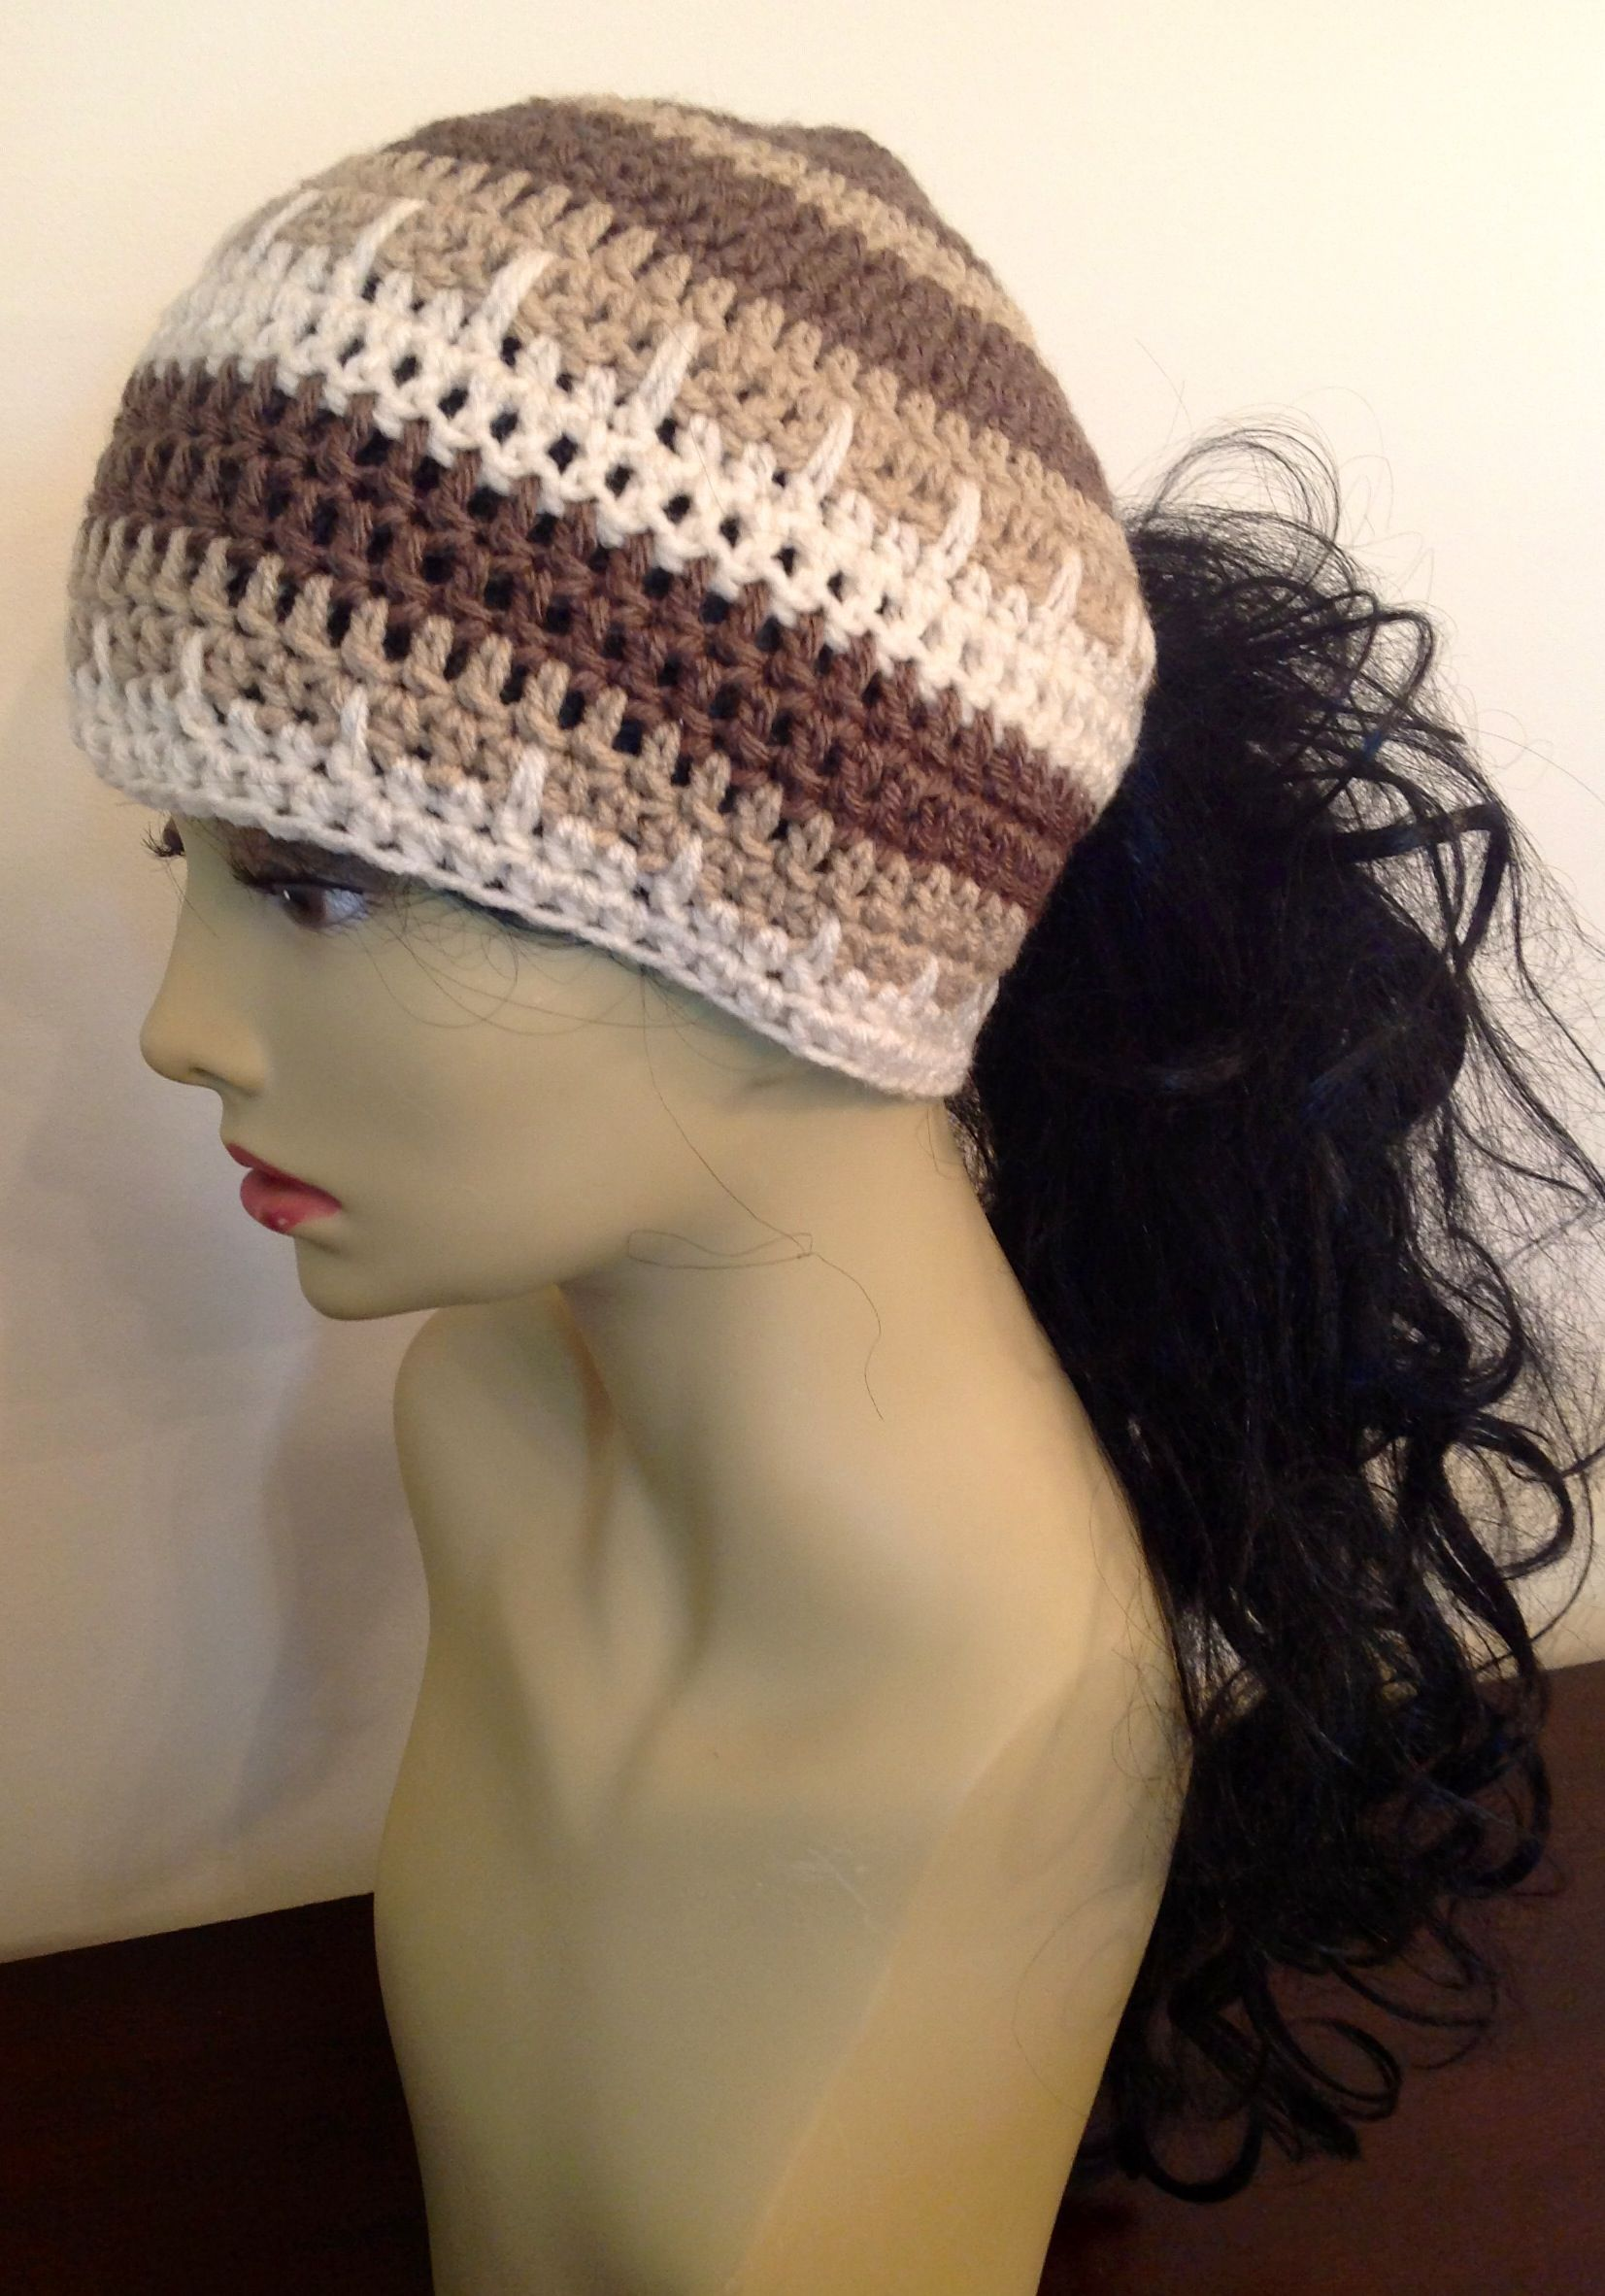 Free Crochet Pattern Ponytail Hat : Crochet ponytail hat Crochet wearables Ive created ...